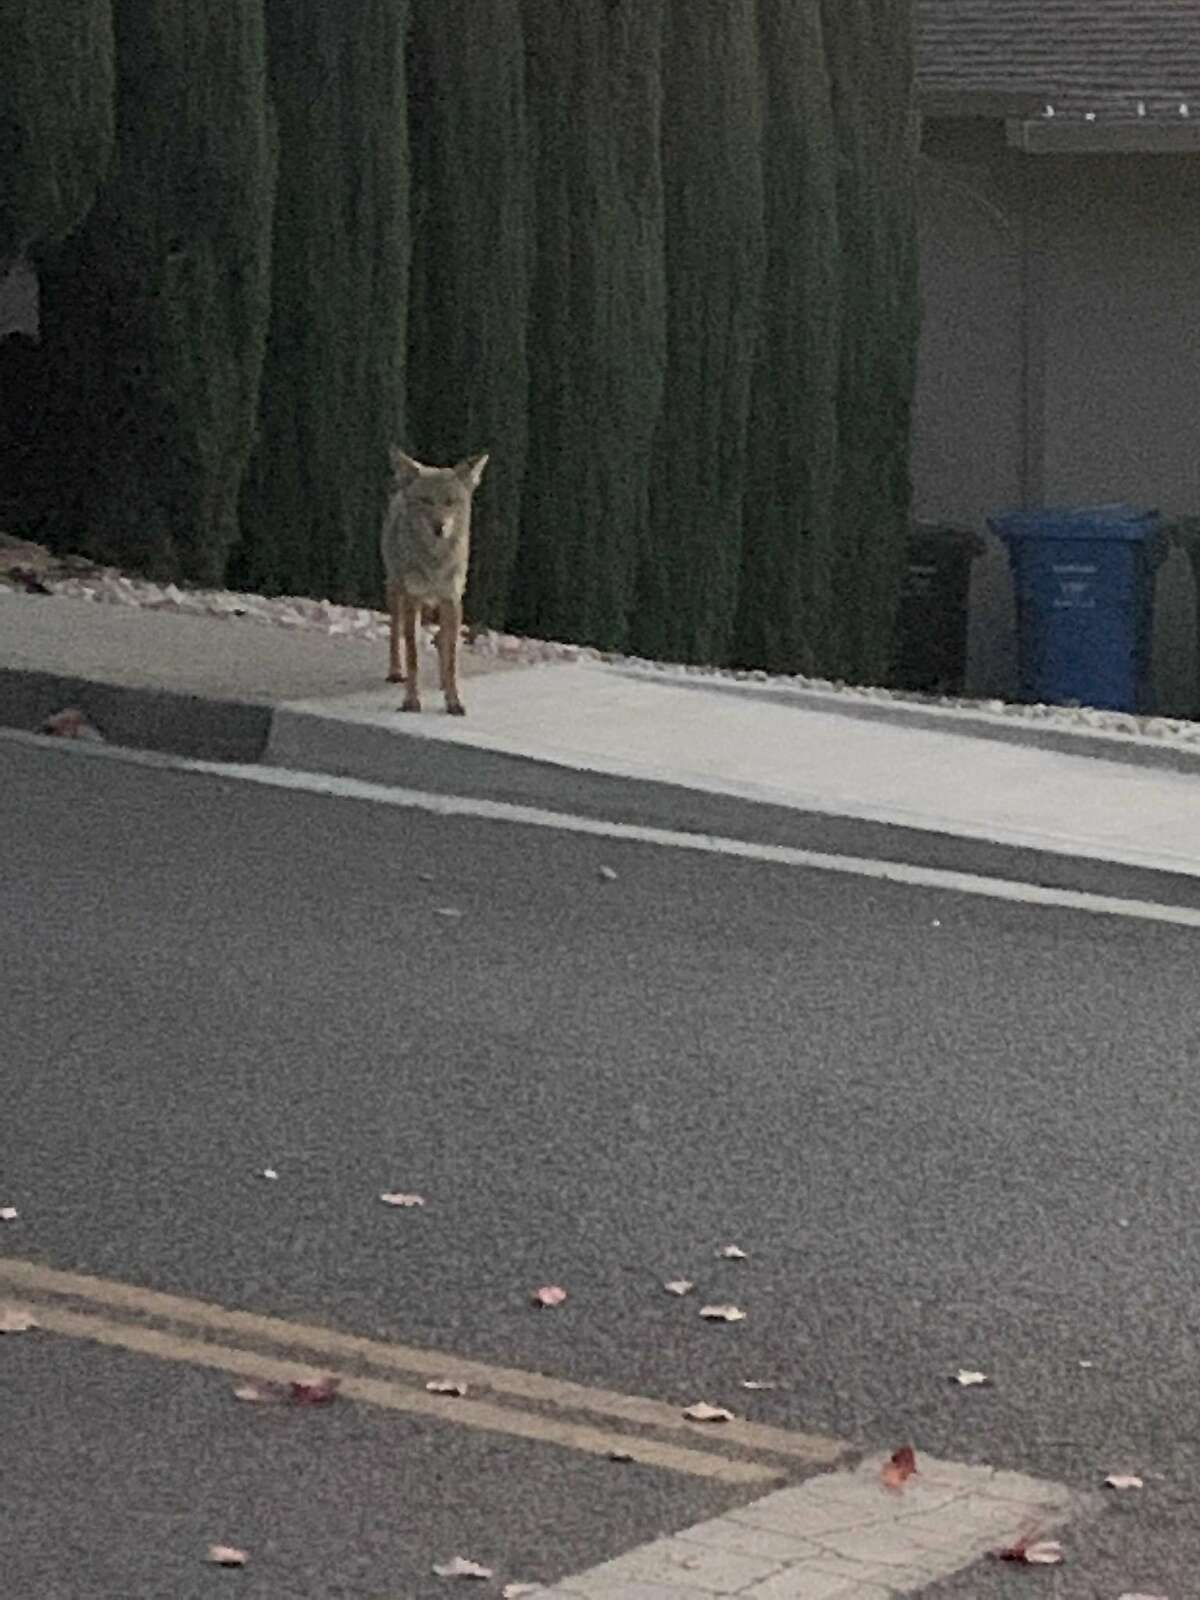 About 15 minutes after the Campolindo High attack on Dec. 4, a woman in the area said she was stalked by a coyote as she walked near the school.